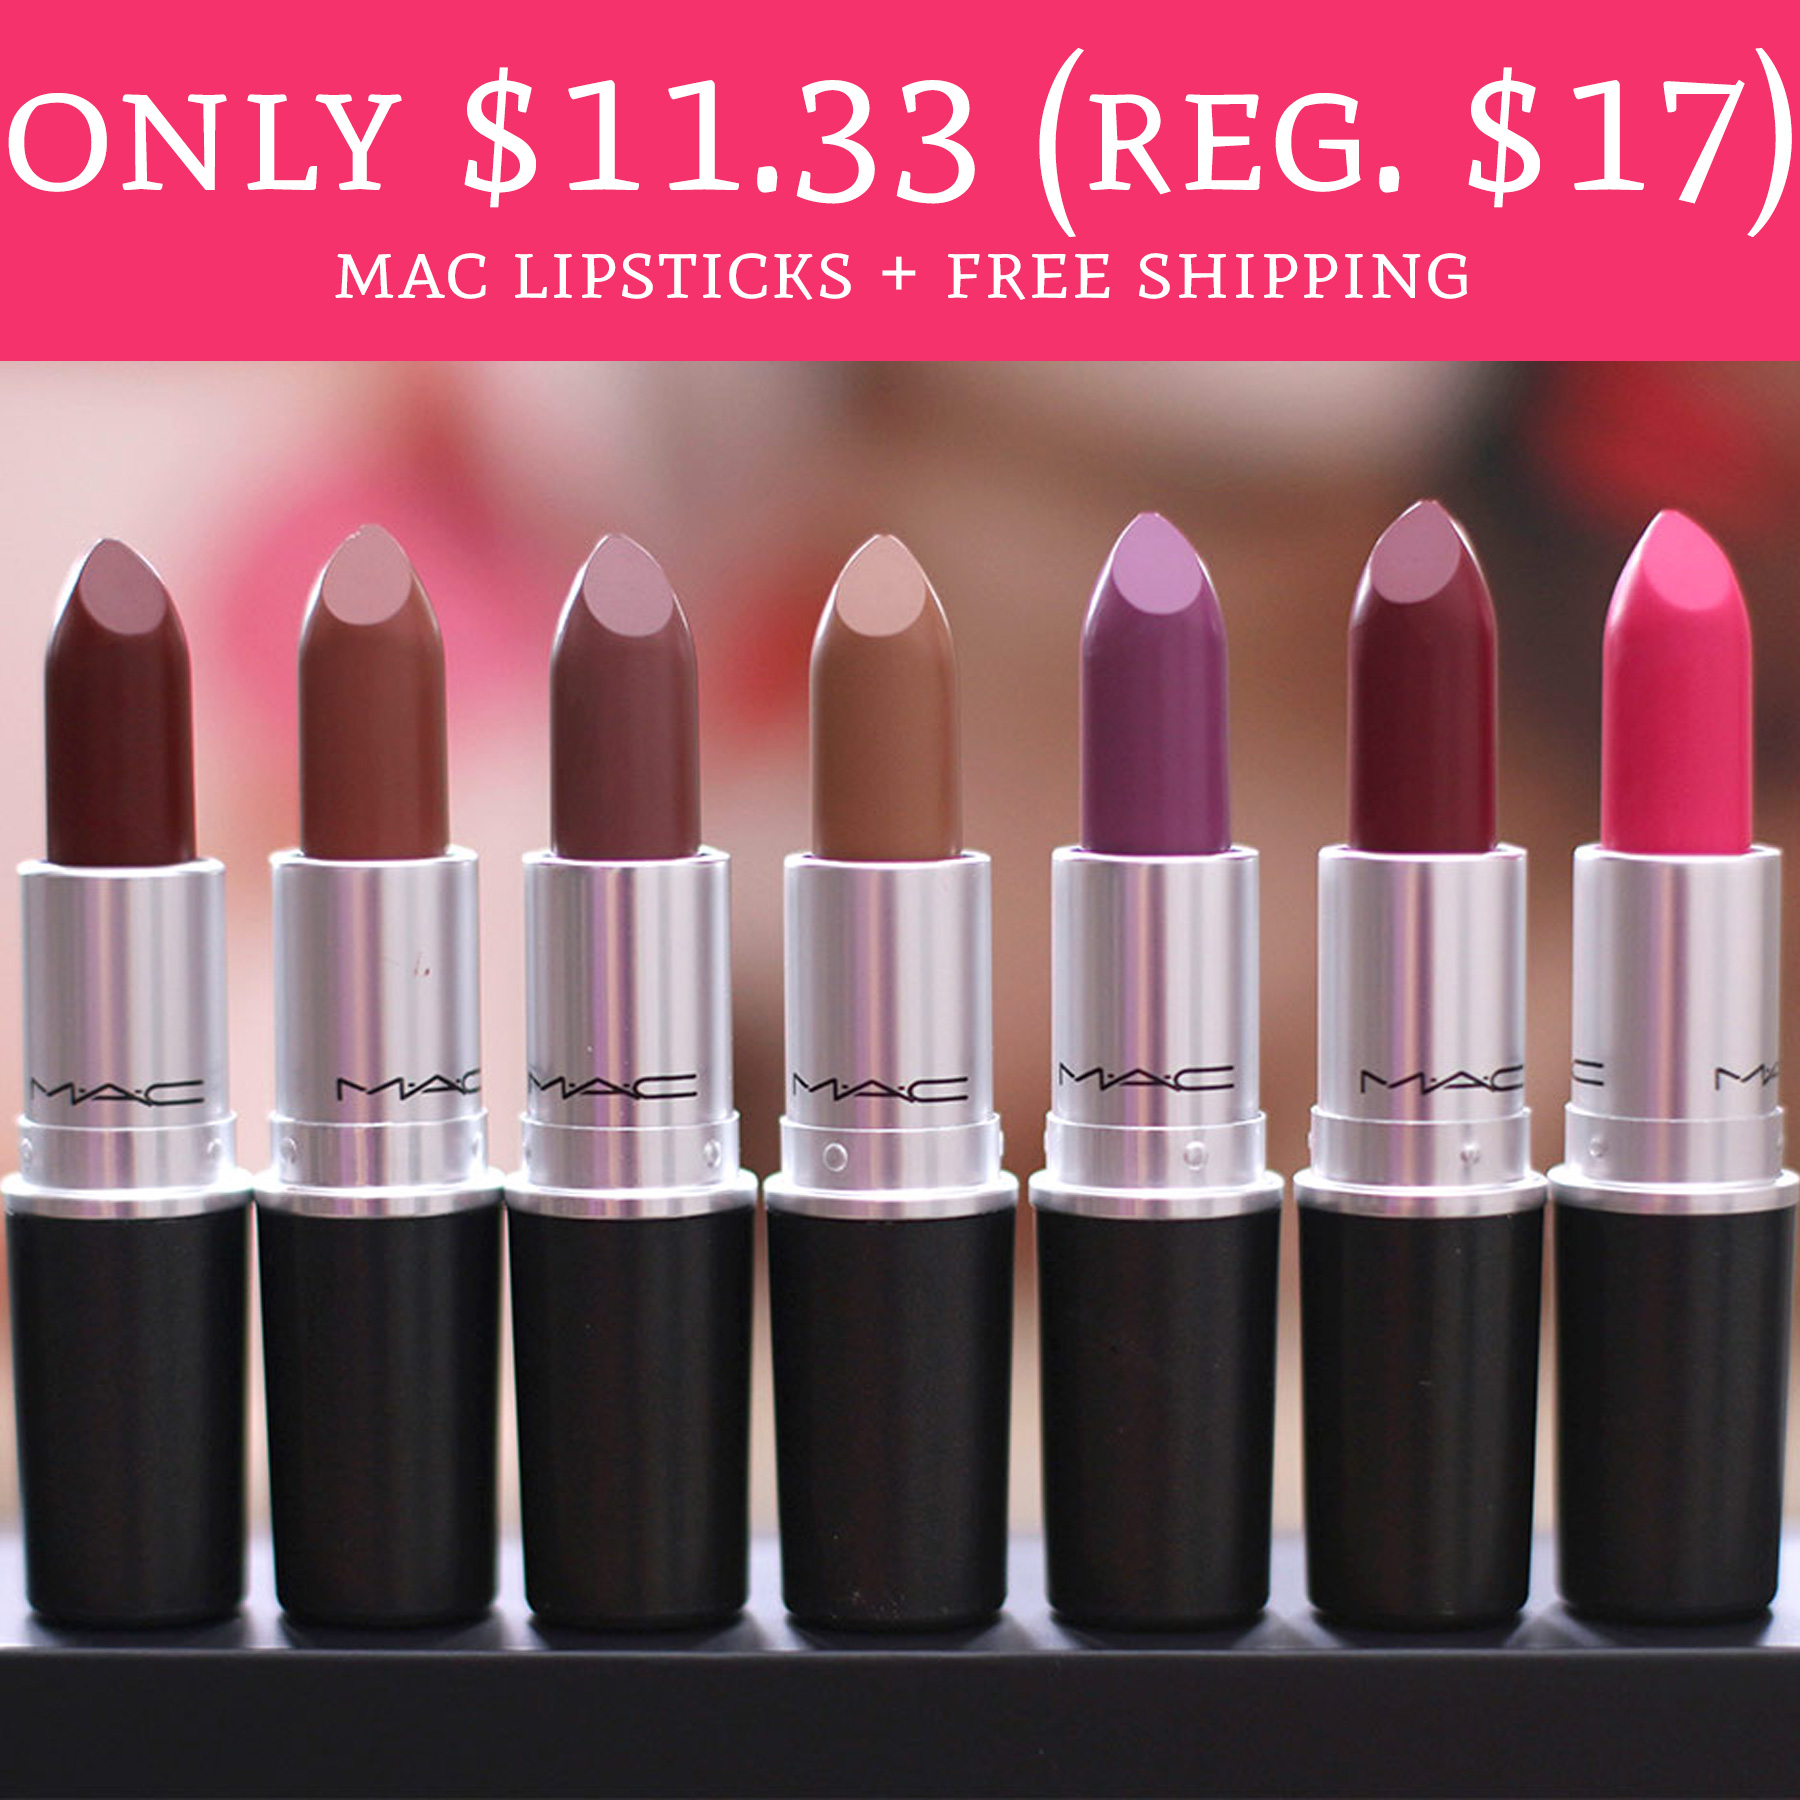 How to use a MAC Cosmetics coupon MAC Cosmetics offers various discounts and deals throughout the year. For a limited time, you can get free standard shipping on all of your orders%().